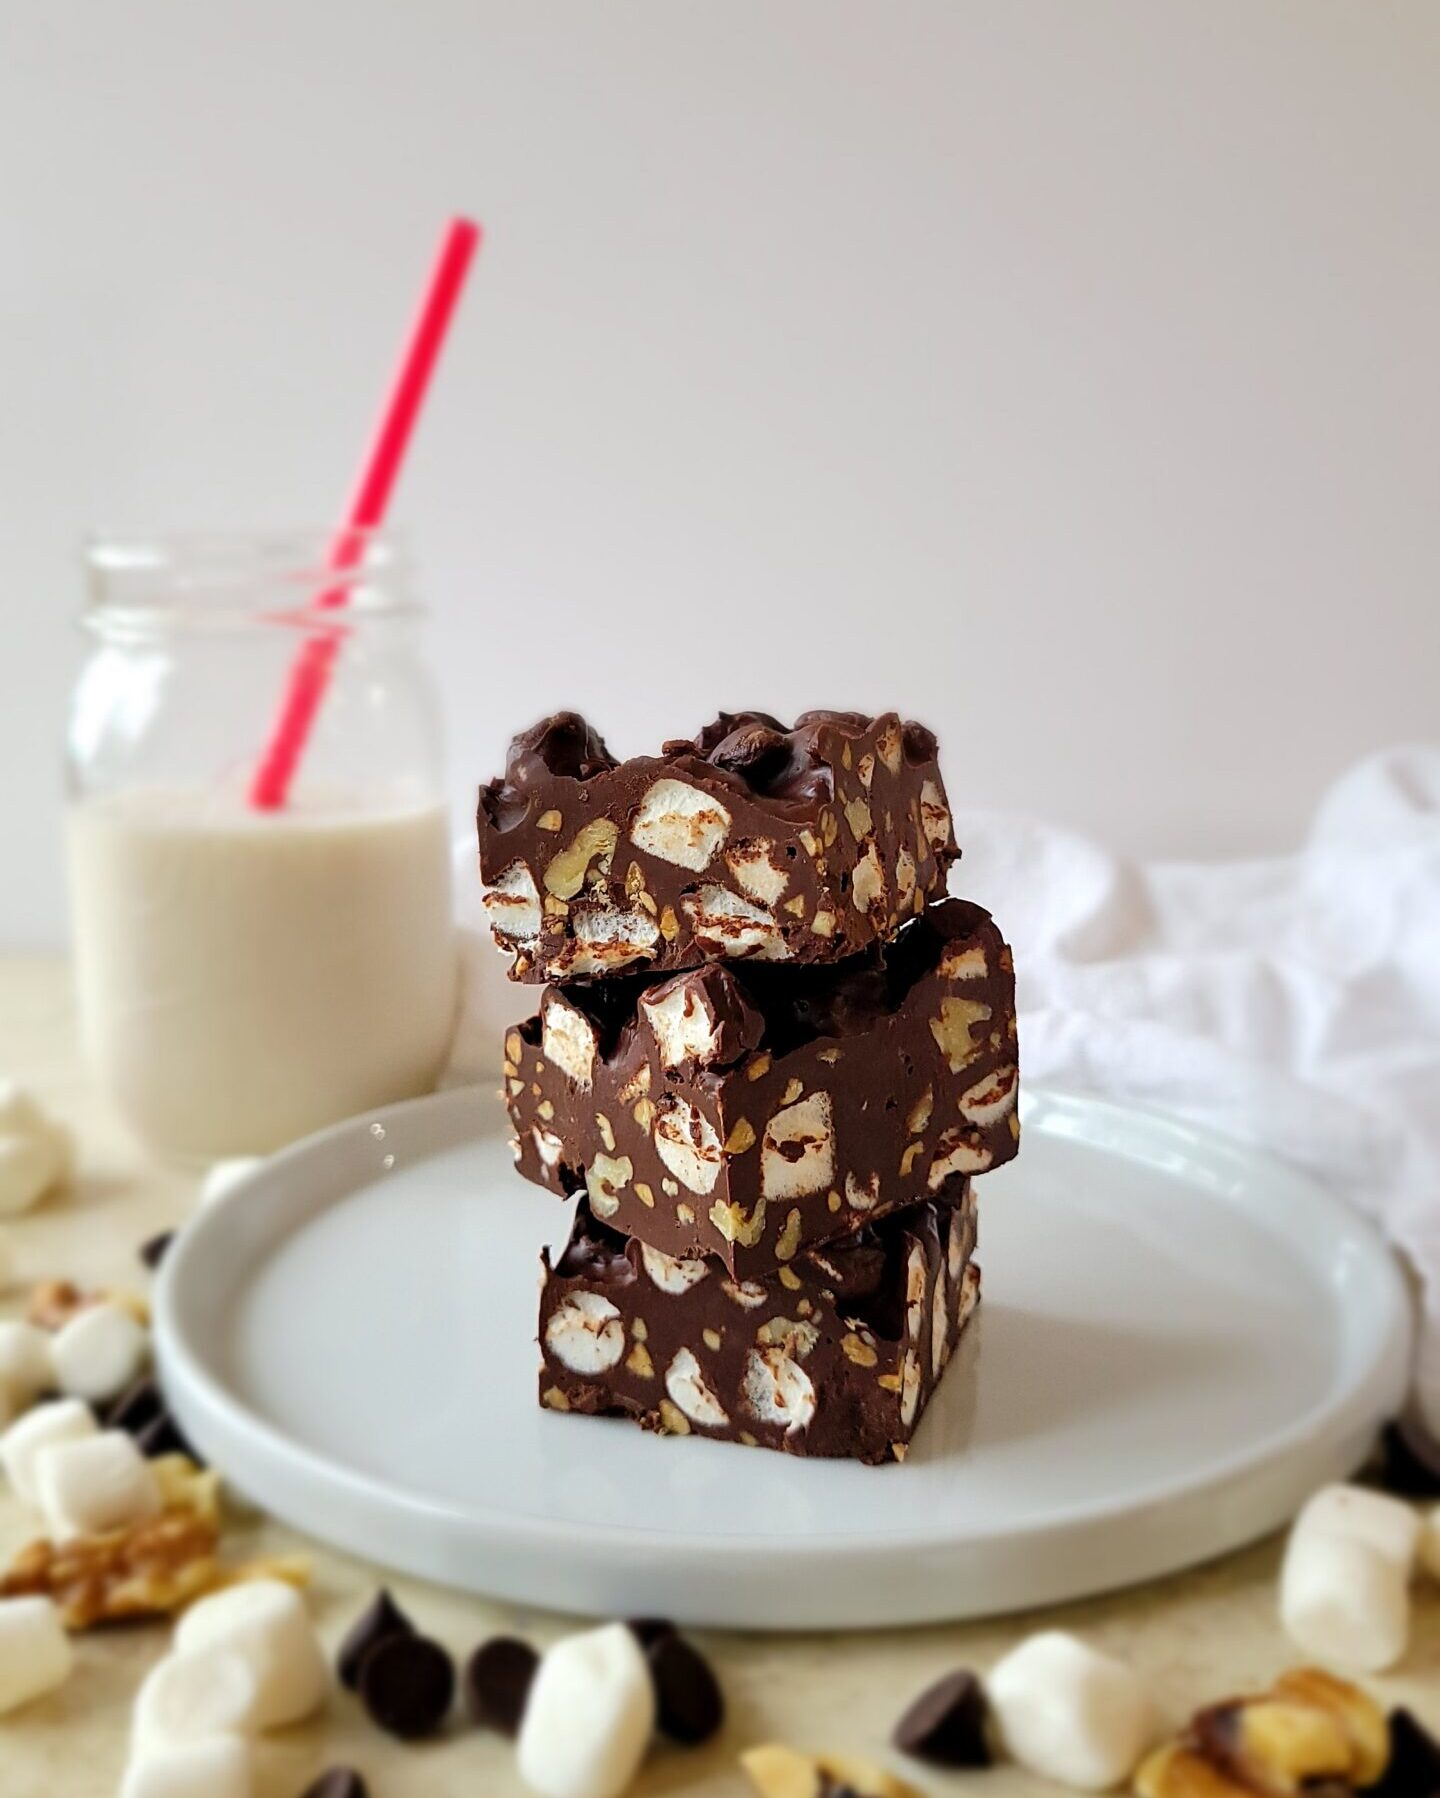 The Dark Chocolate Rocky Road bars are gorgeous when served to family and guests.